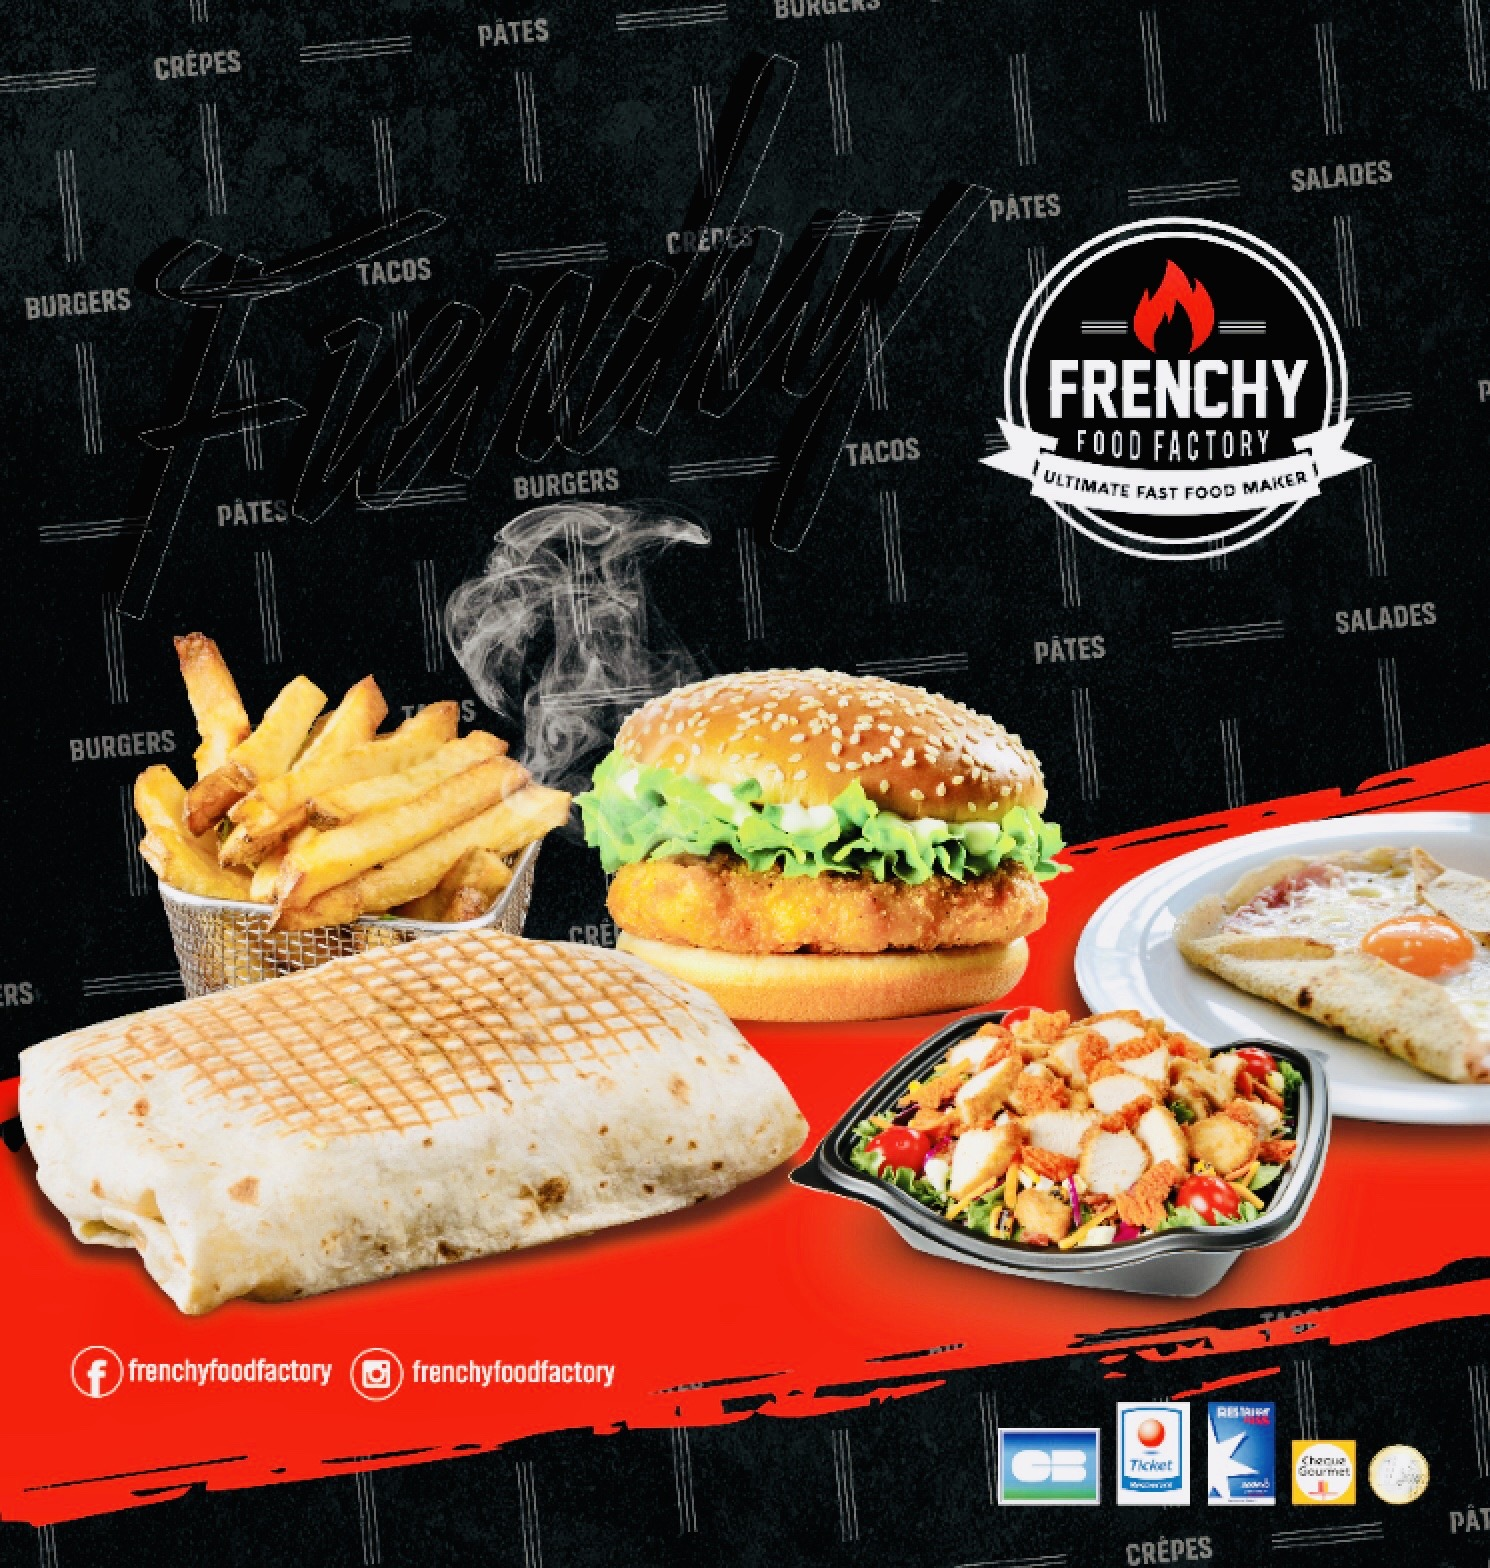 Frenchy Food Factory